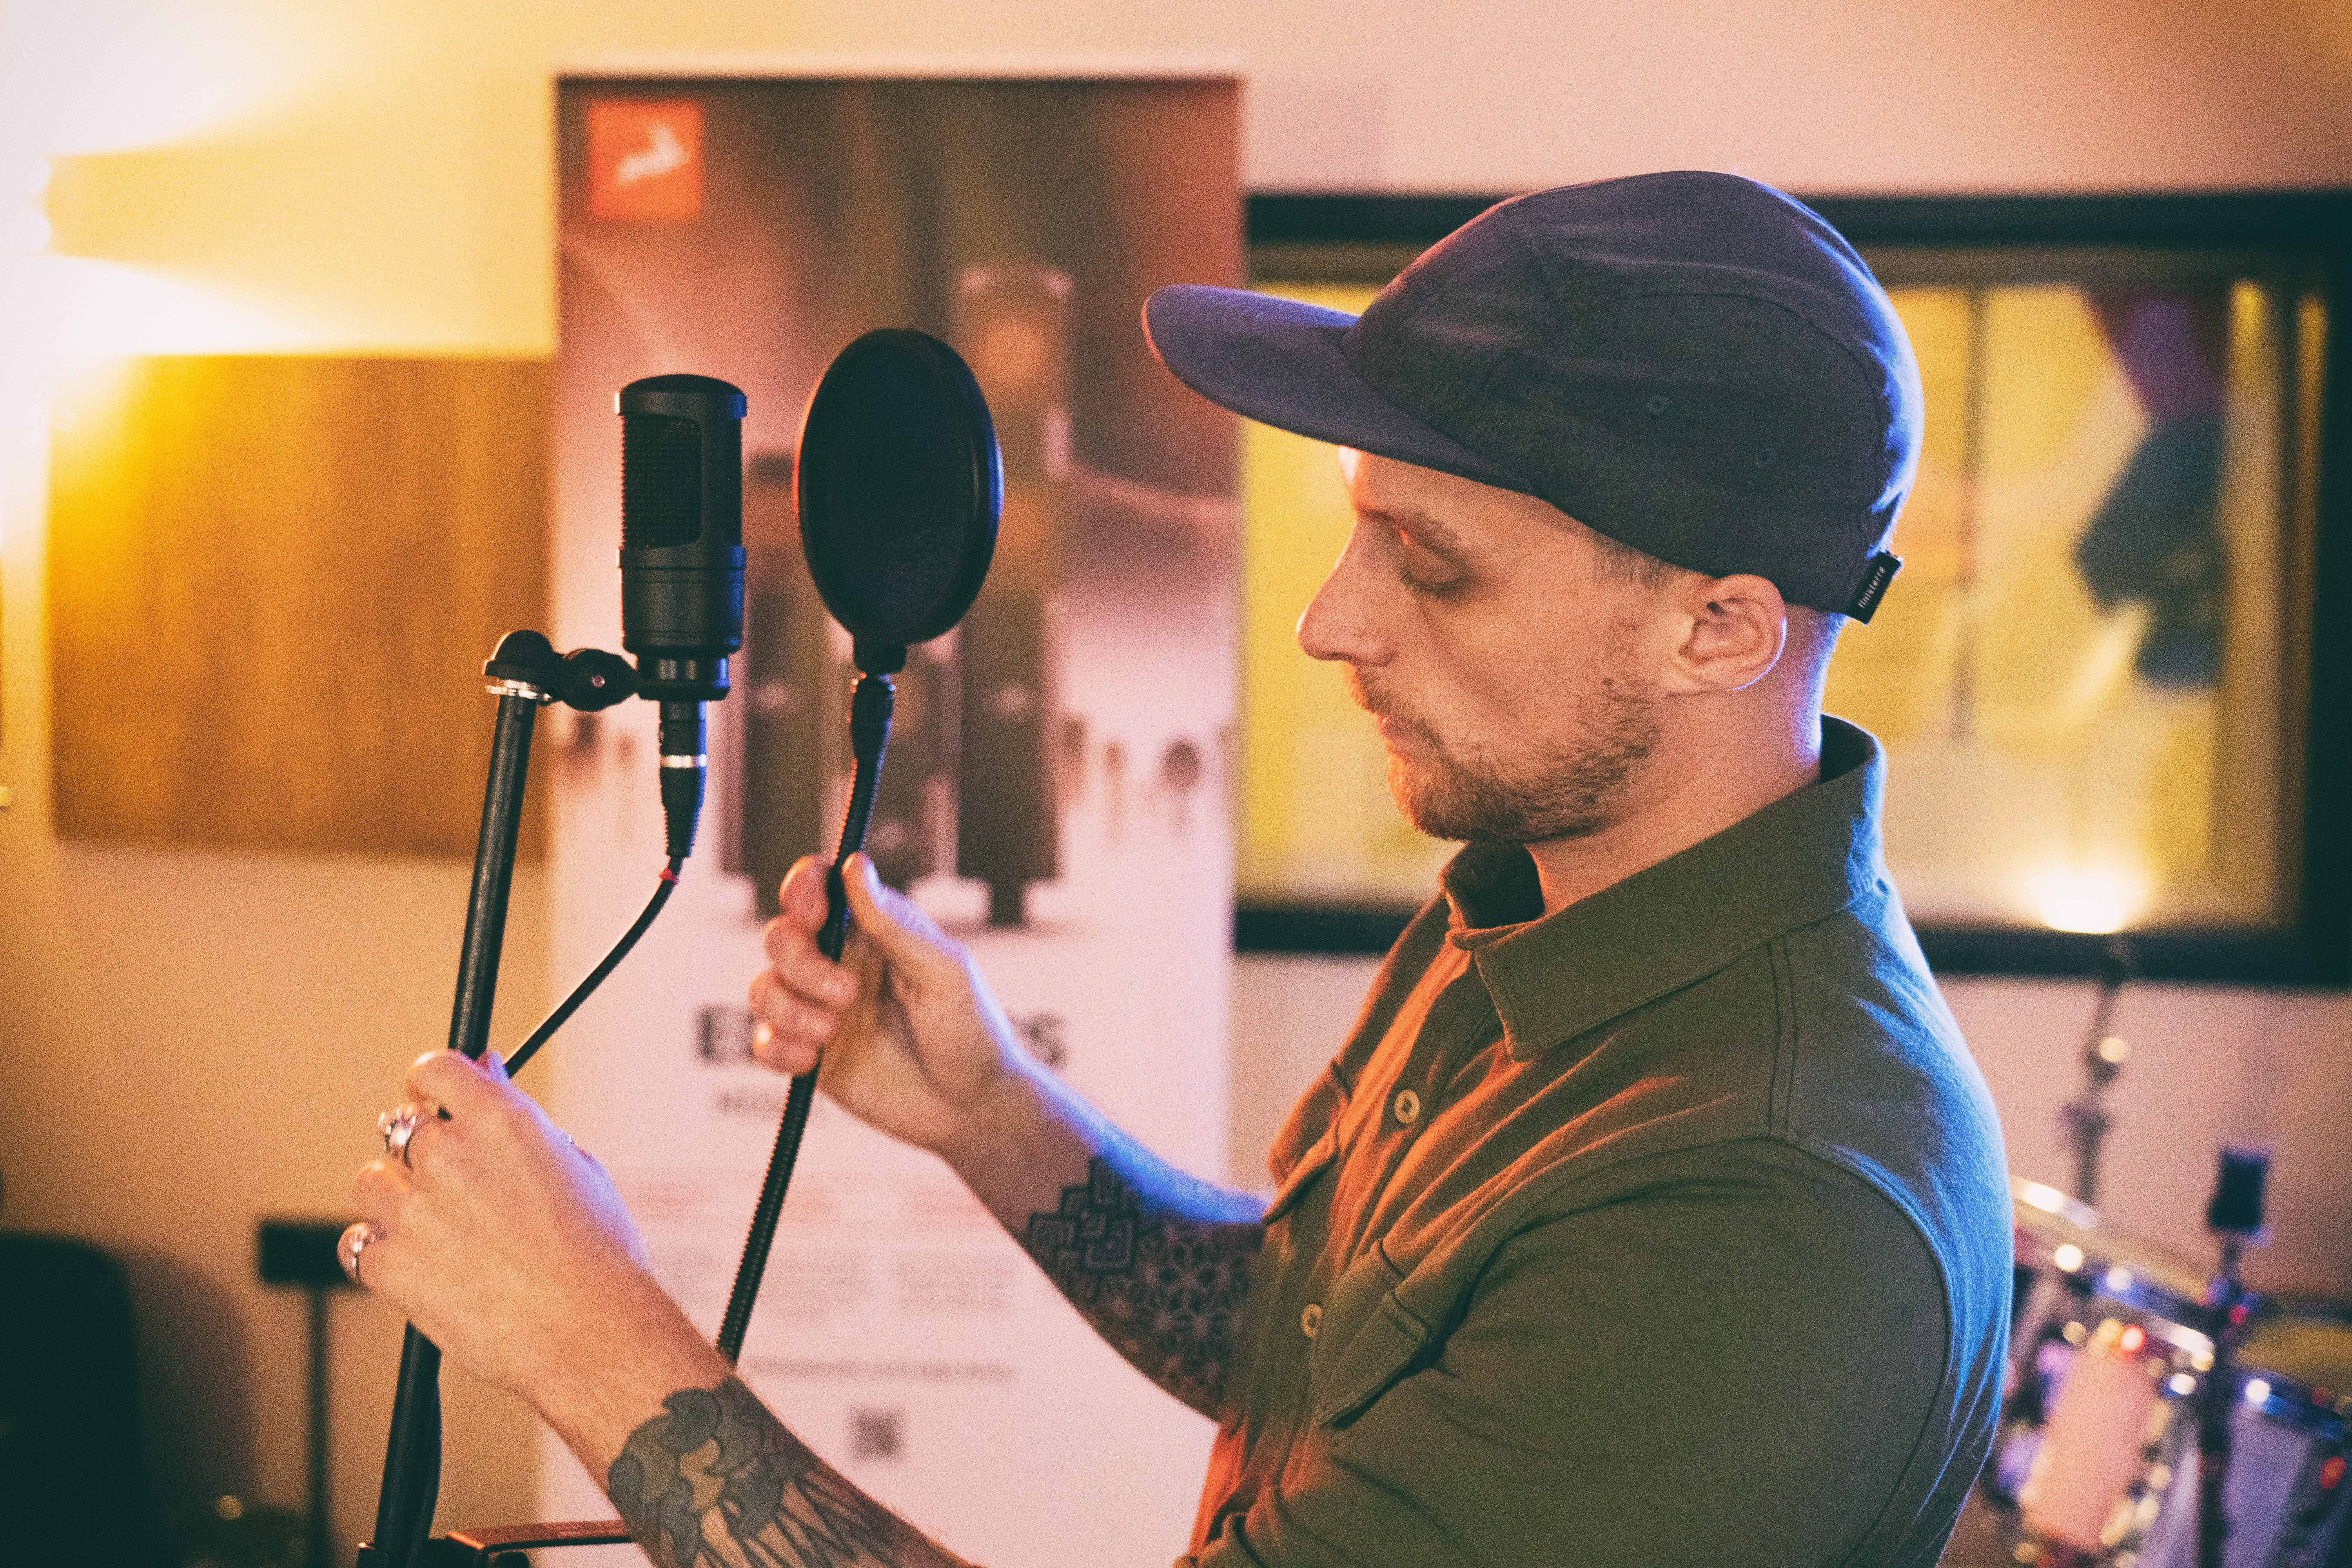 Danny Trachtenberg fixing an Edge Solo microphone